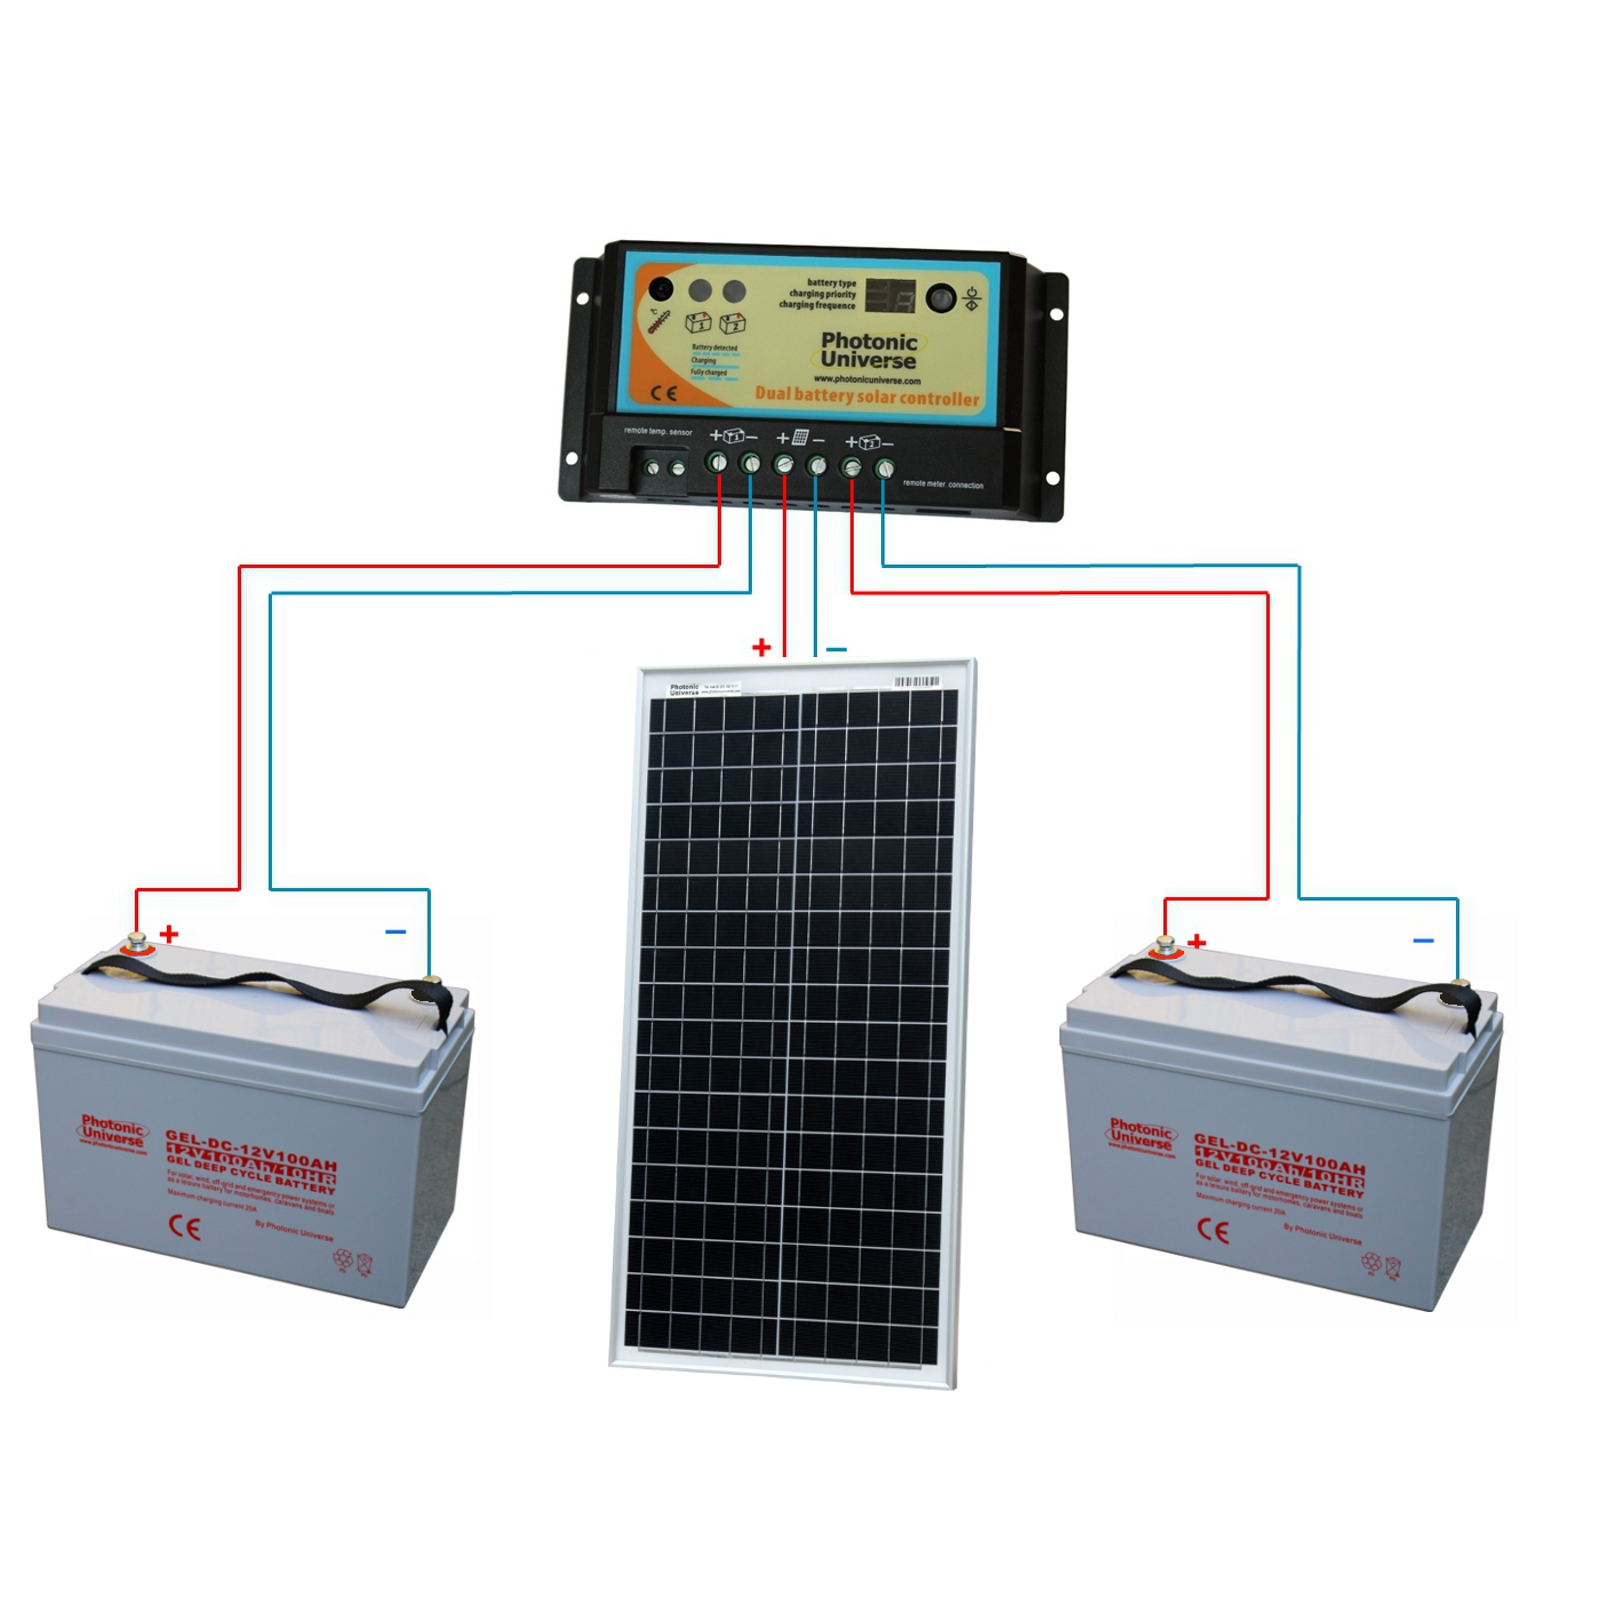 Connection diagram for 40W 12V  Photonic Universe dual battery solar charging kit